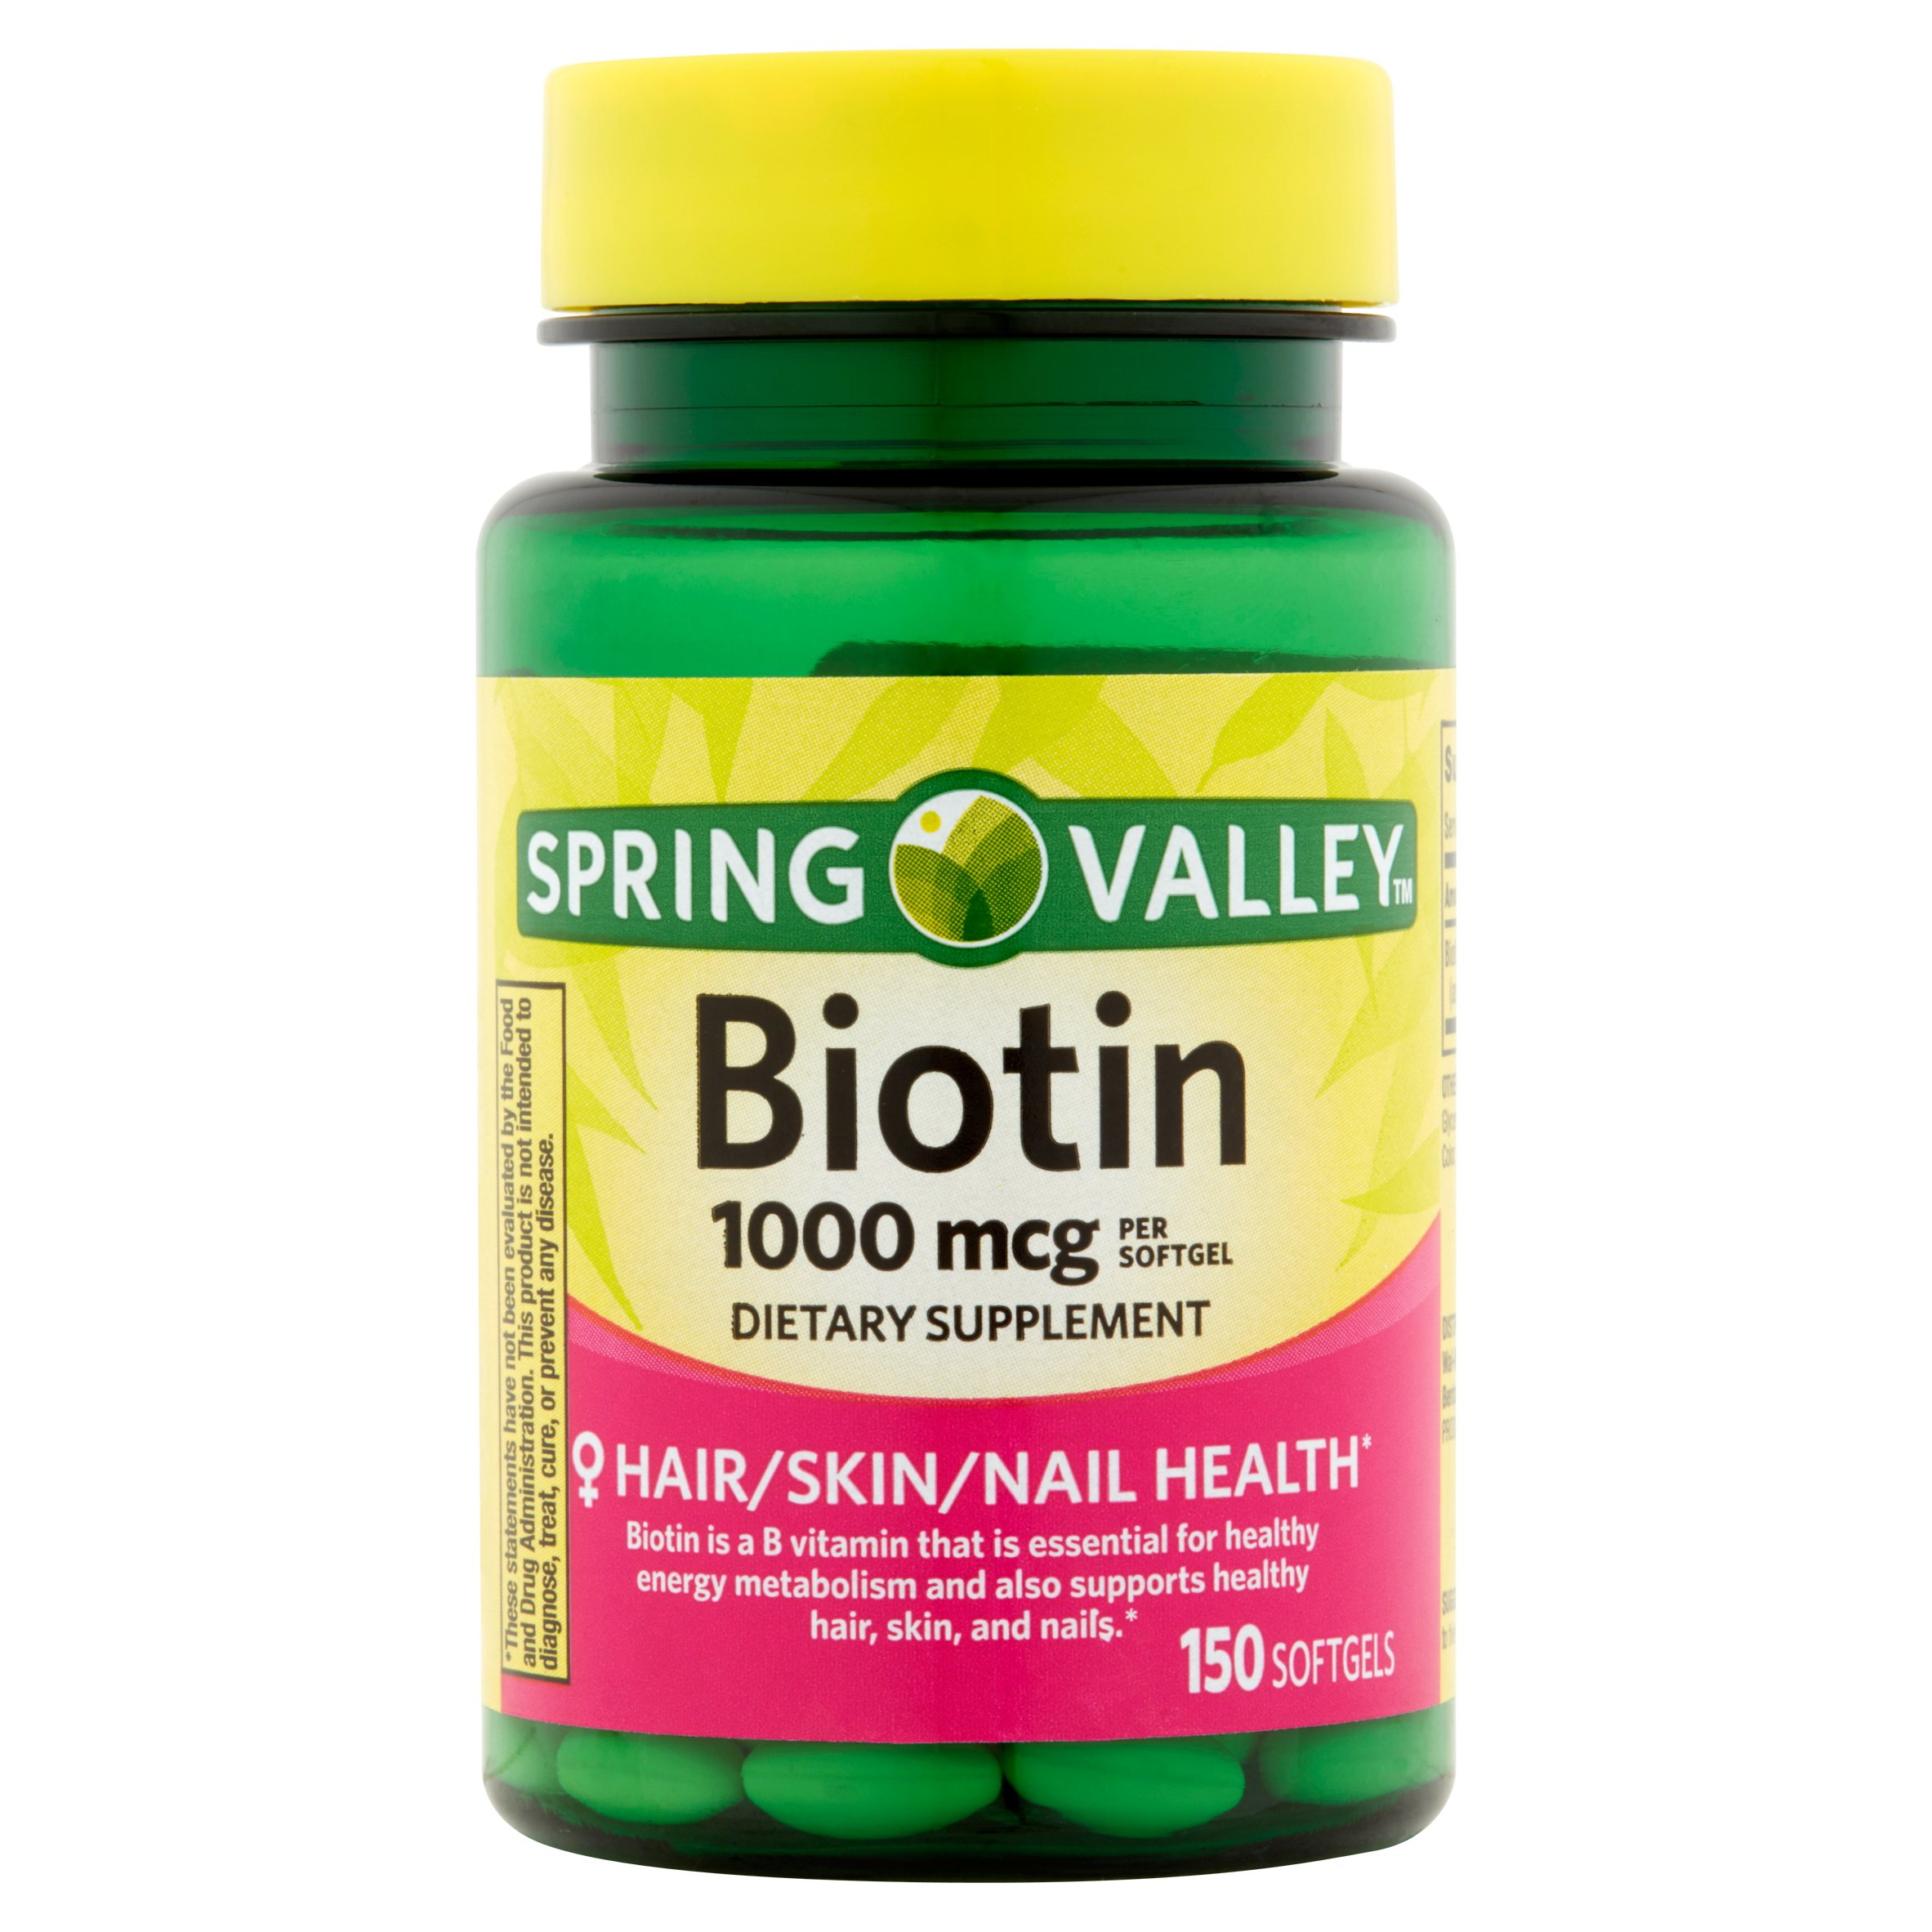 Spring Valley Biotin Softgels, 1000 mcg, 150 Ct